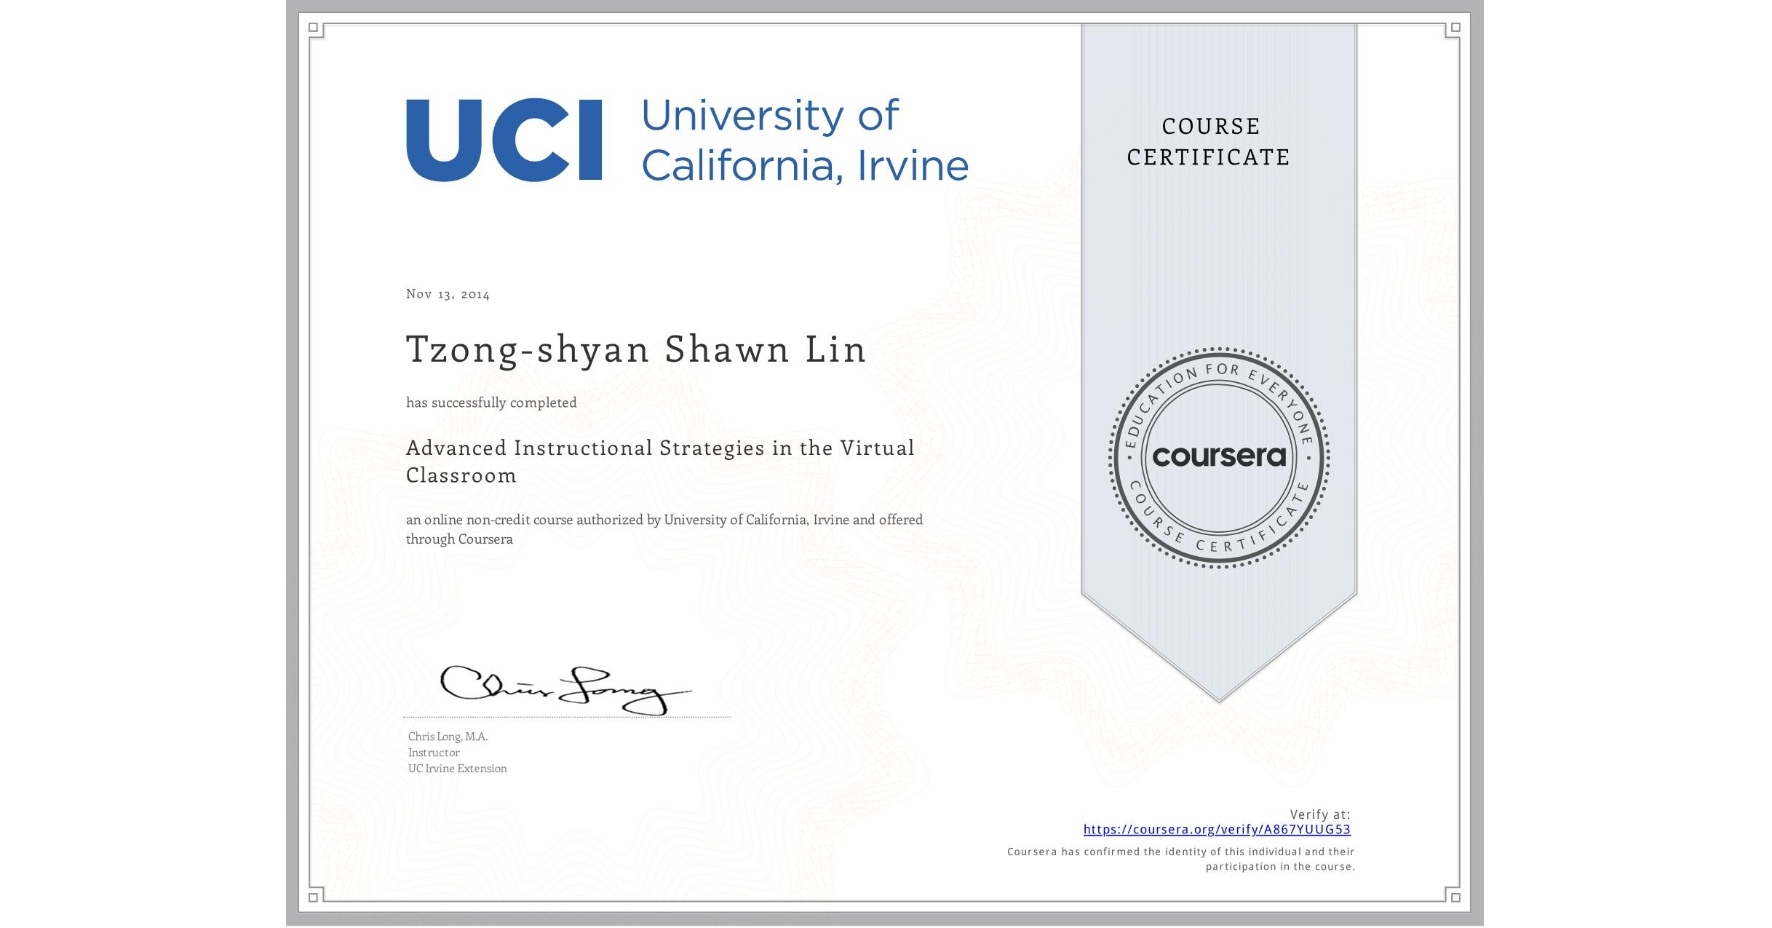 View certificate for Tzong-shyan Shawn Lin, Advanced Instructional Strategies in the Virtual Classroom, an online non-credit course authorized by University of California, Irvine and offered through Coursera